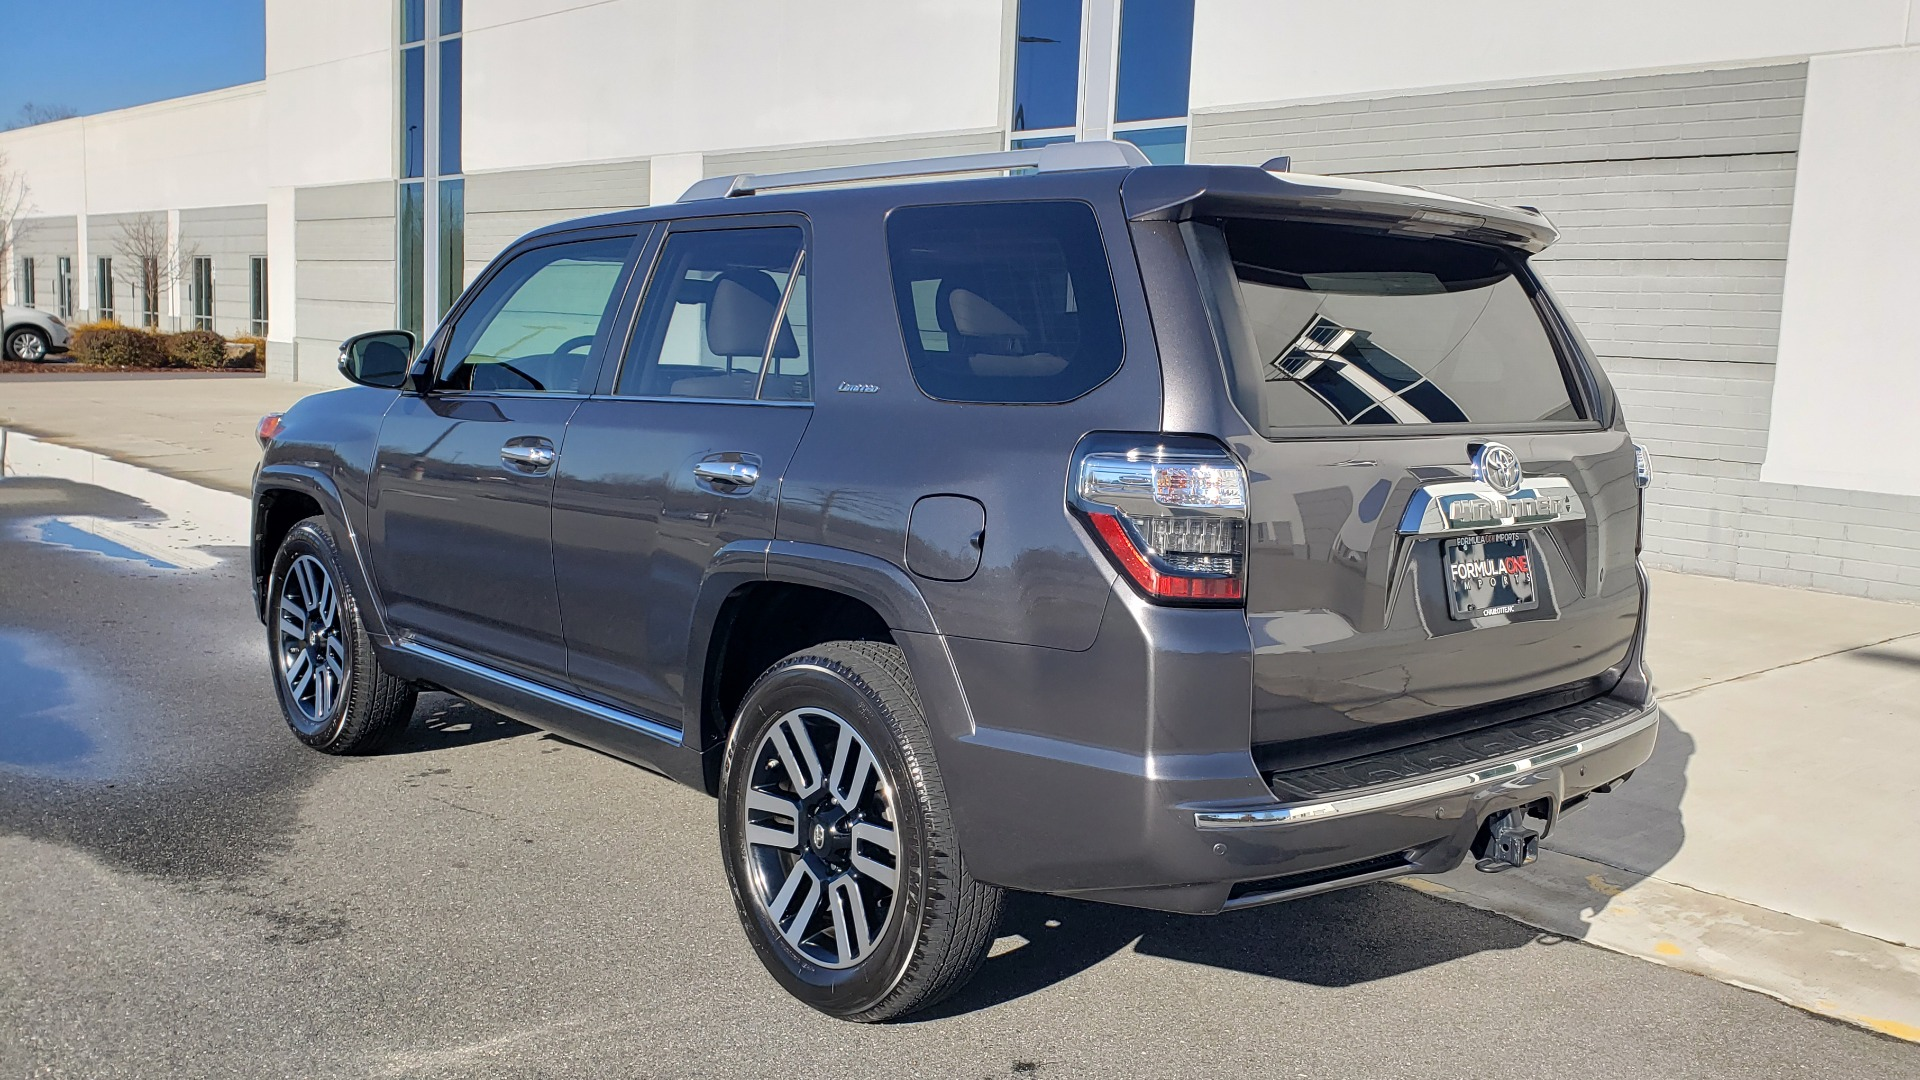 Used 2018 Toyota 4RUNNER LIMITED 4X4 / 4.0 V6 / AUTO / NAV / SUNROOF / REARVIEW for sale Sold at Formula Imports in Charlotte NC 28227 4